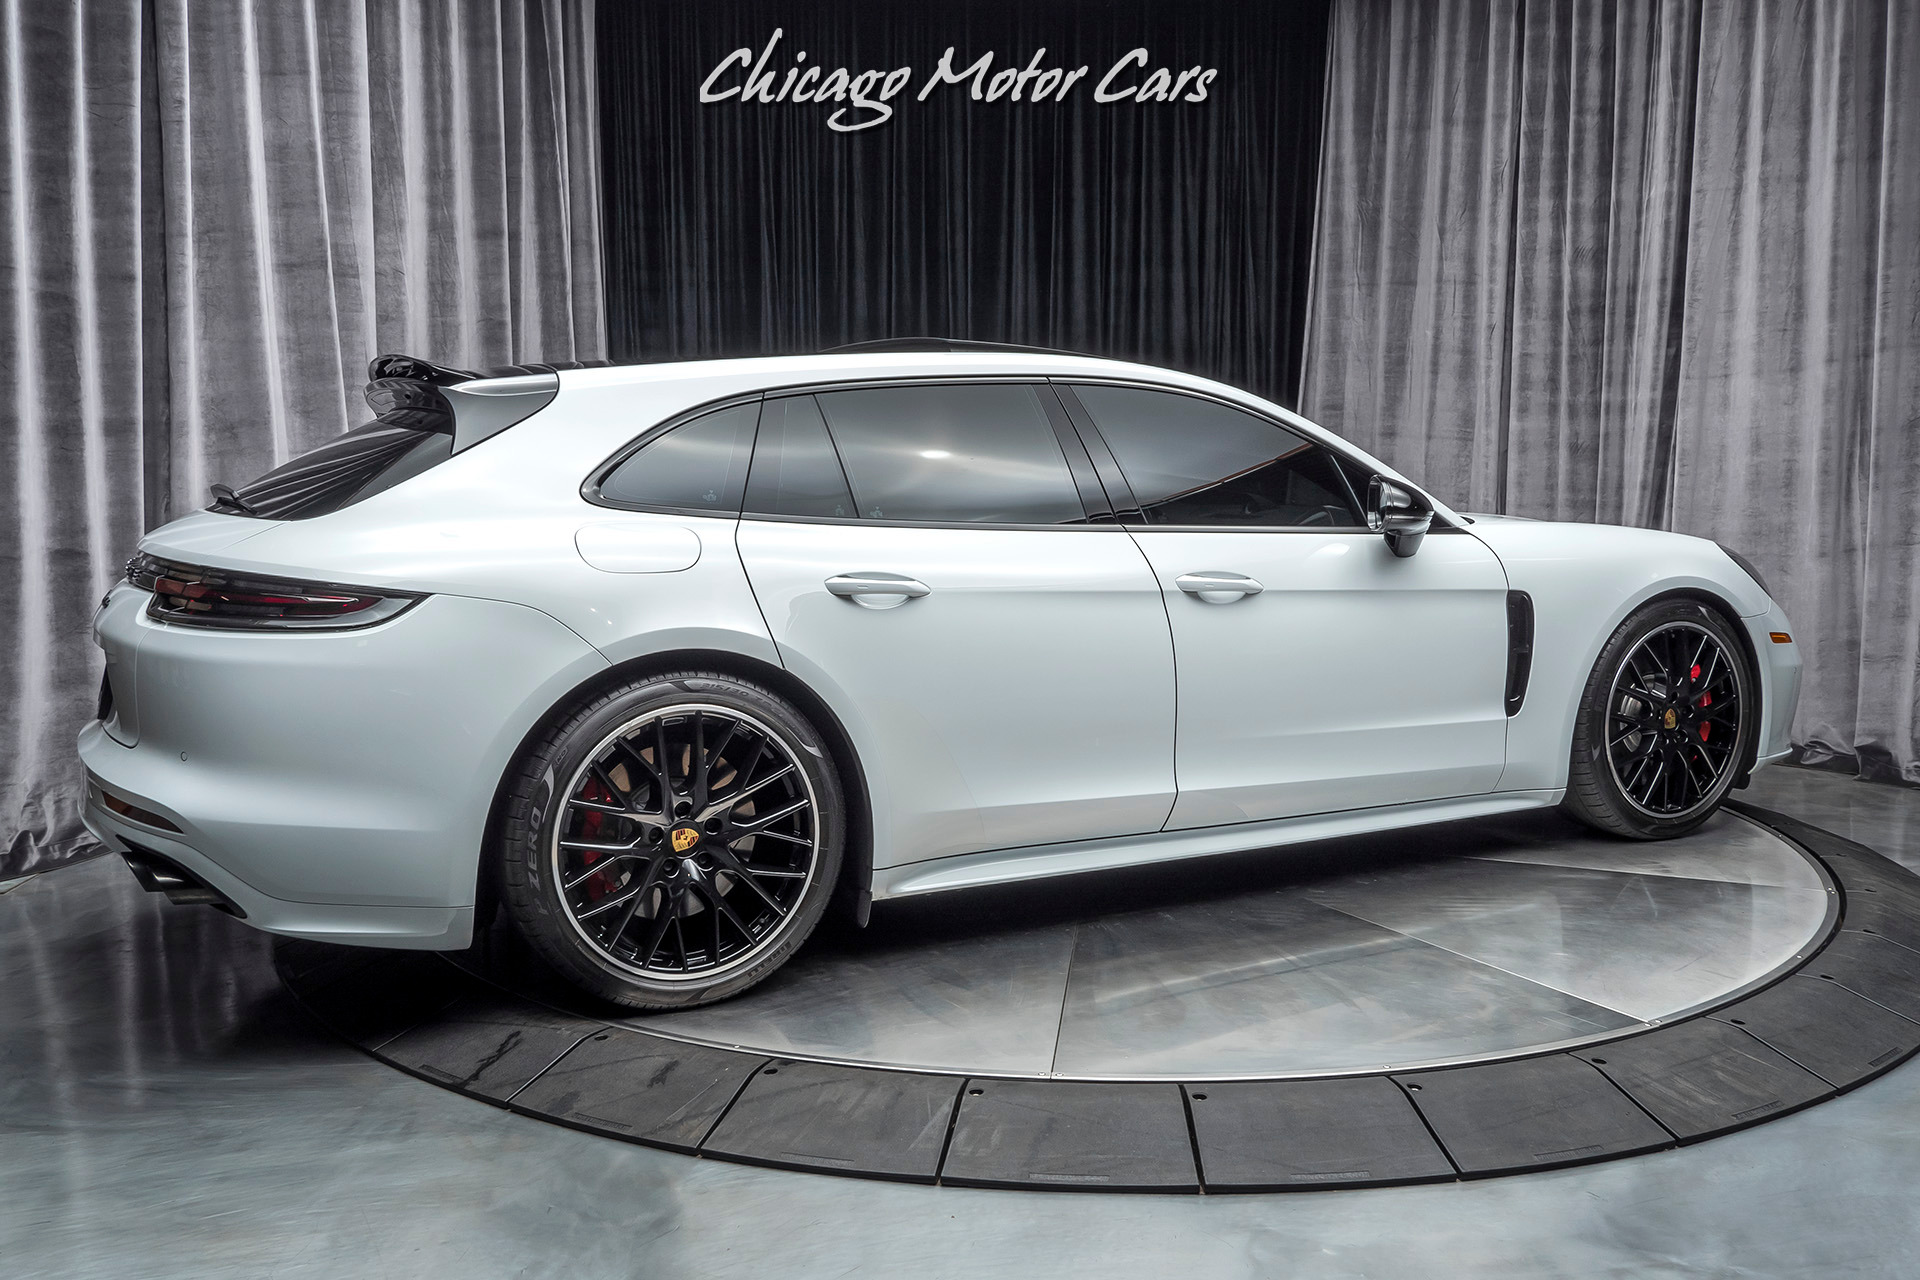 Used-2018-Porsche-Panamera-Turbo-Sport-Turismo-MSRP-186k-SPORT-PACKAGE---SPORT-DESIGN-PACKAGE